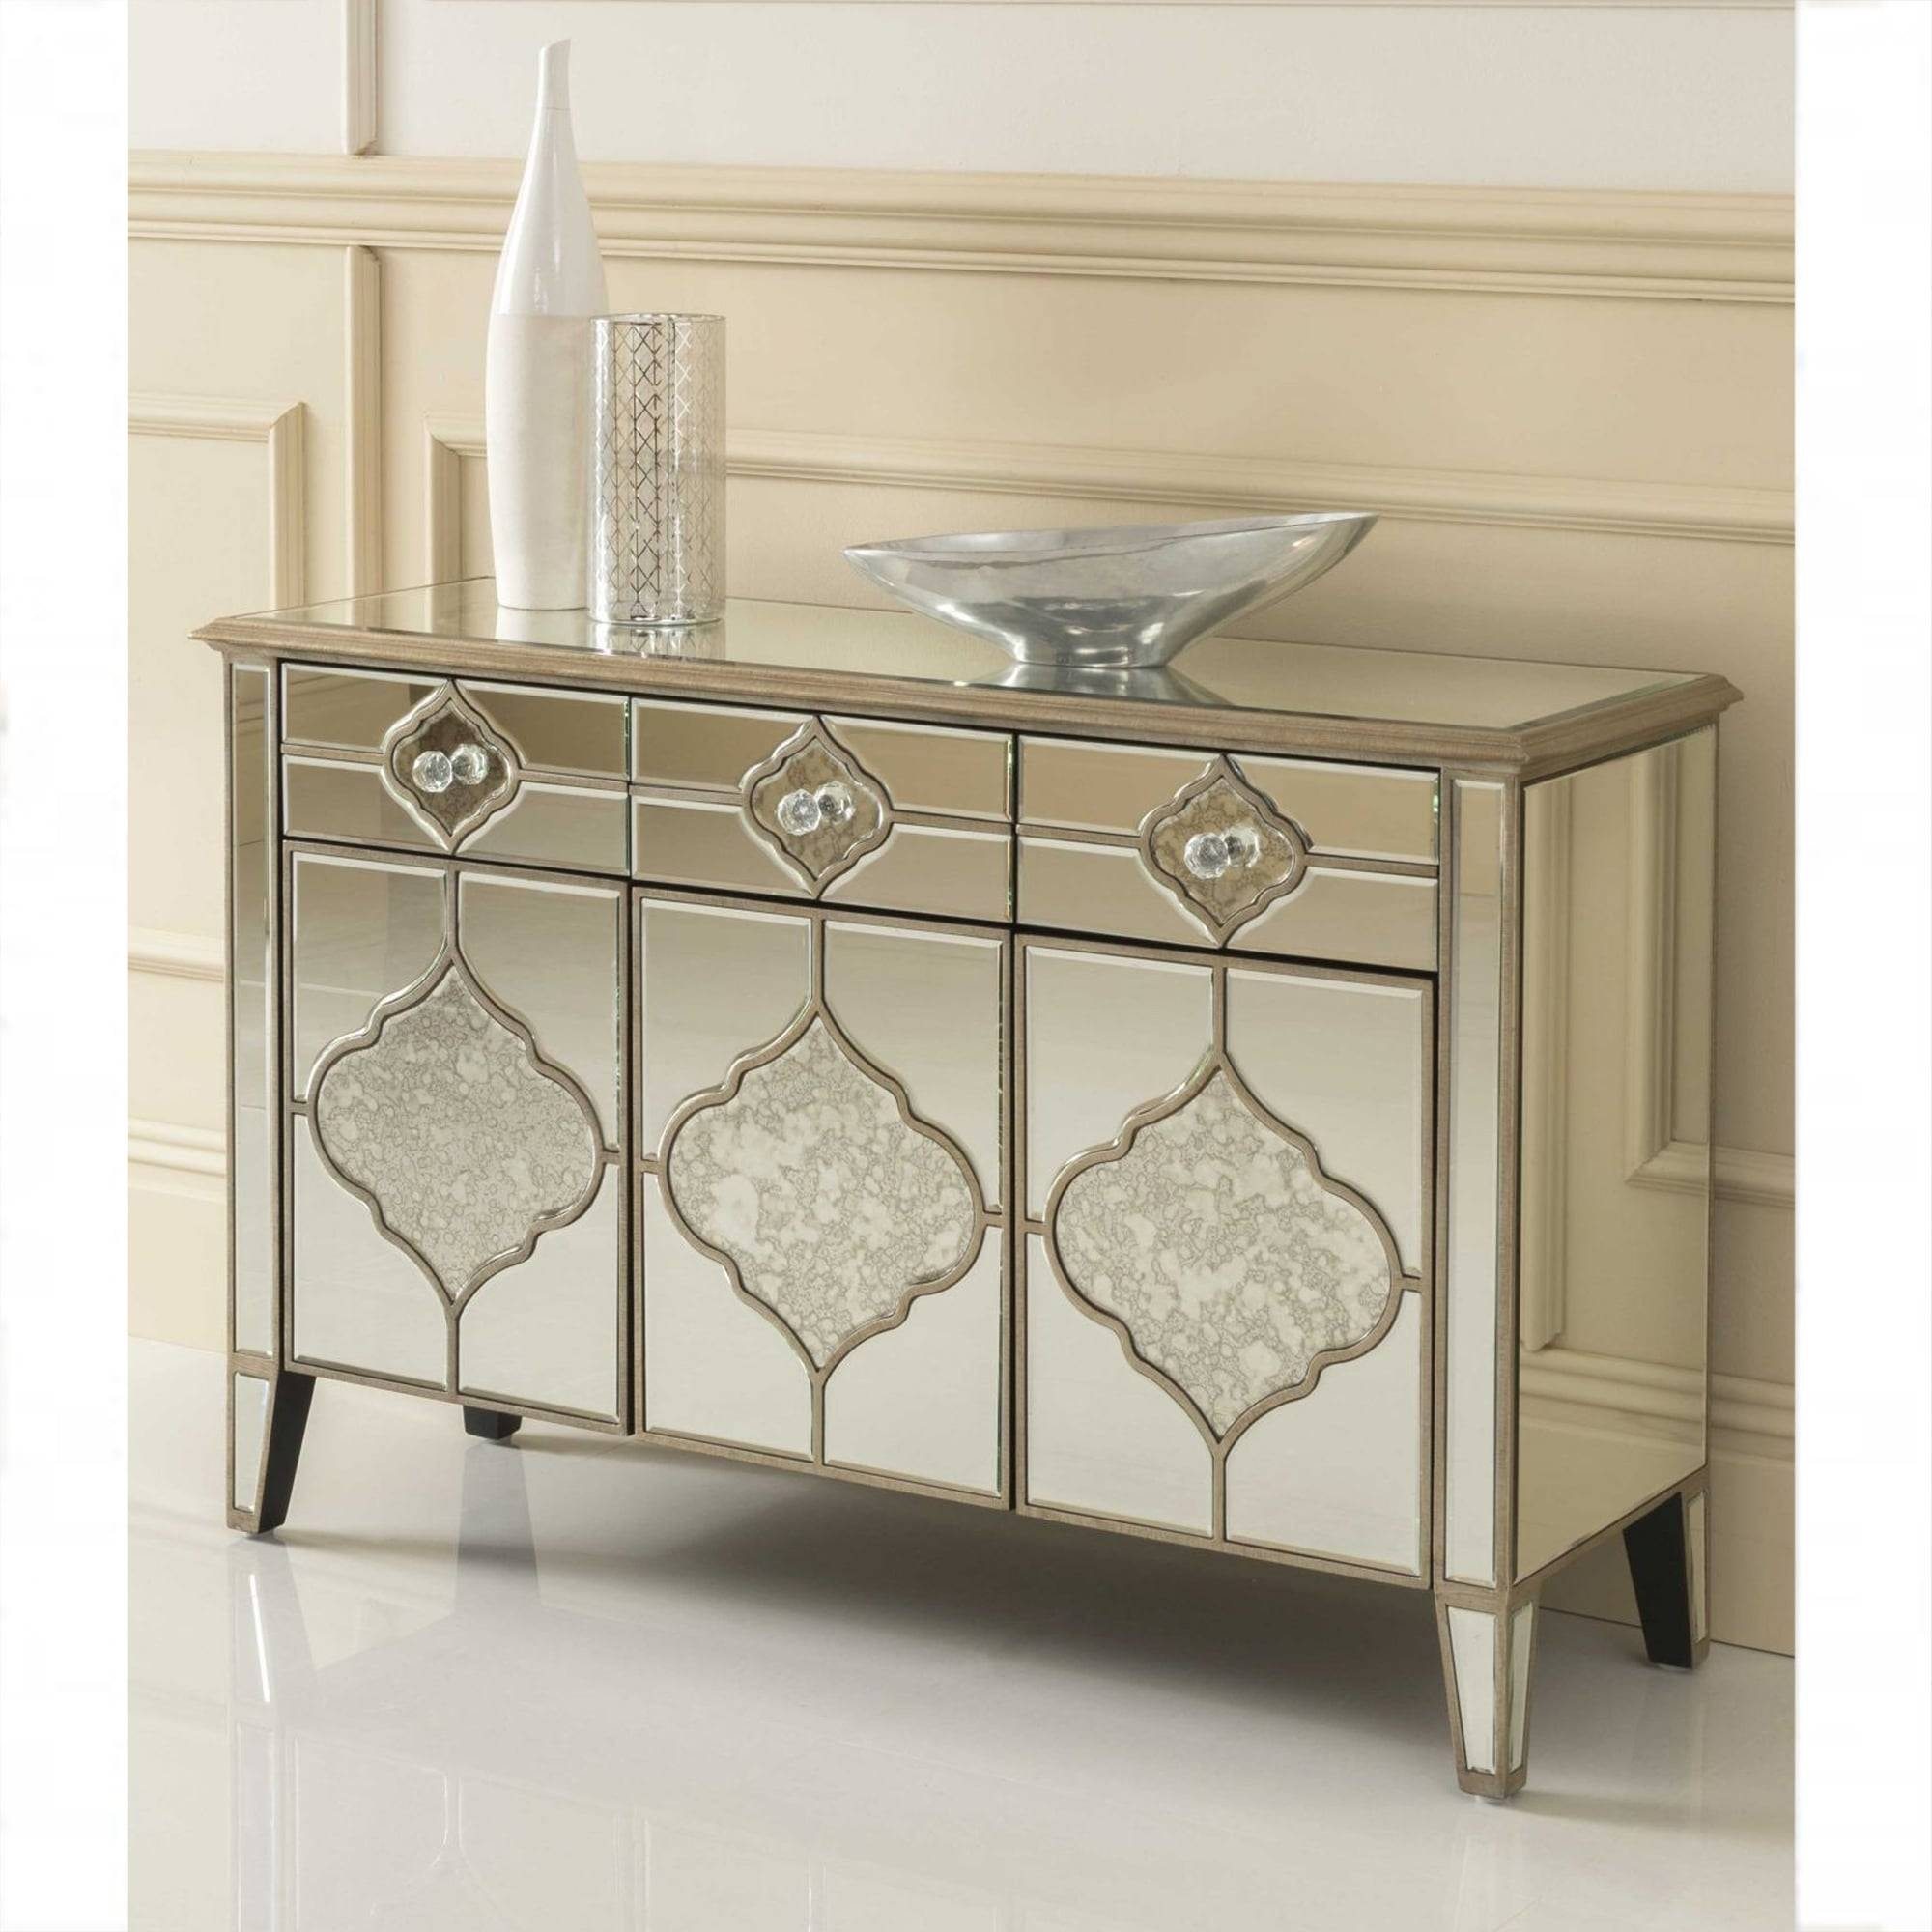 Sassari Mirrored Sideboard | Venetian Glass Furniture intended for Sideboard Furniture (Image 10 of 15)